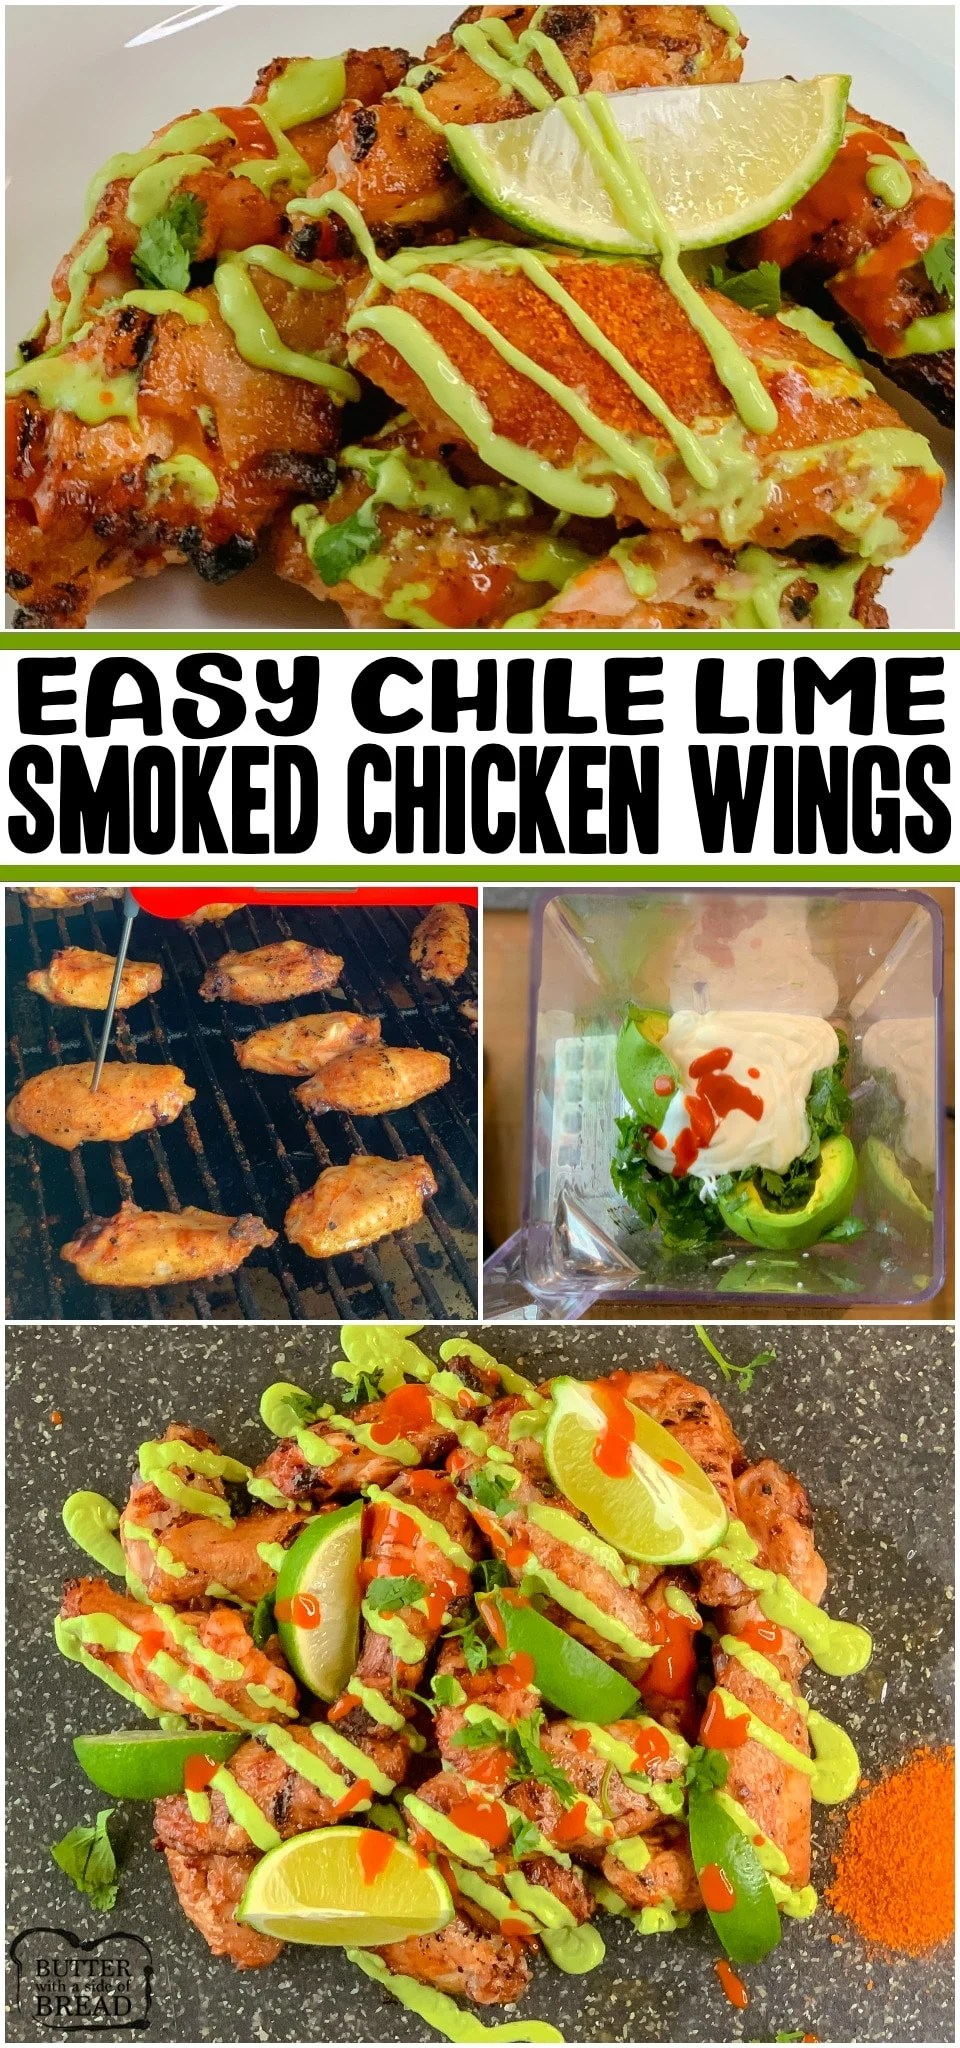 Chile Lime Smoked Chicken Wings made easy with a bit of prep and under an hour on the smoker! Bold, fresh flavors of chile lime paired with tender smoked chicken wings and topped with an amazing avocado crema make this my go-to wings recipe!